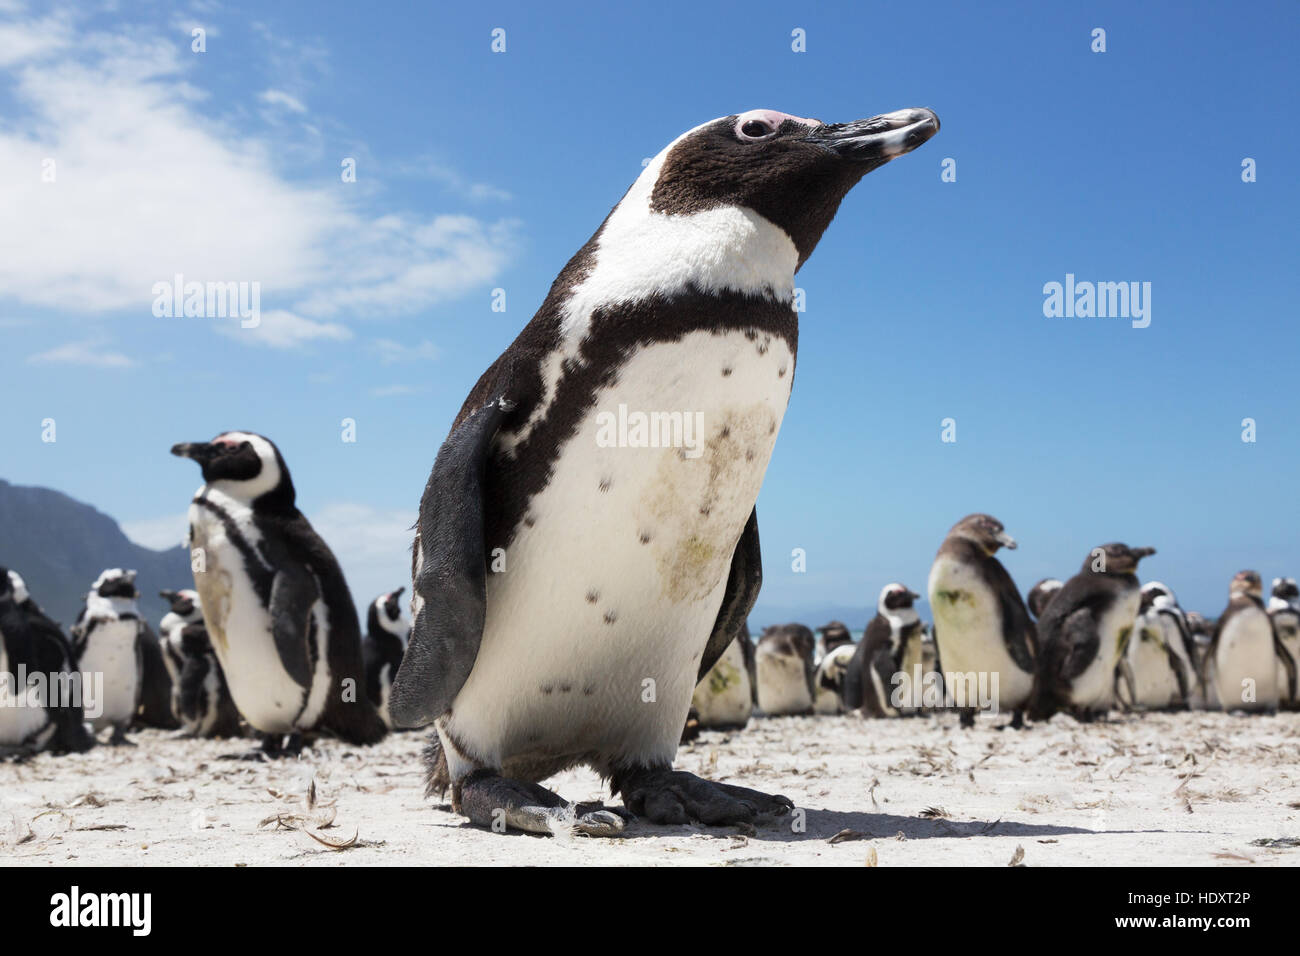 African Penguin ( Spheniscus demersus ) Betty's Bay, Western Cape, South Africa - Stock Image